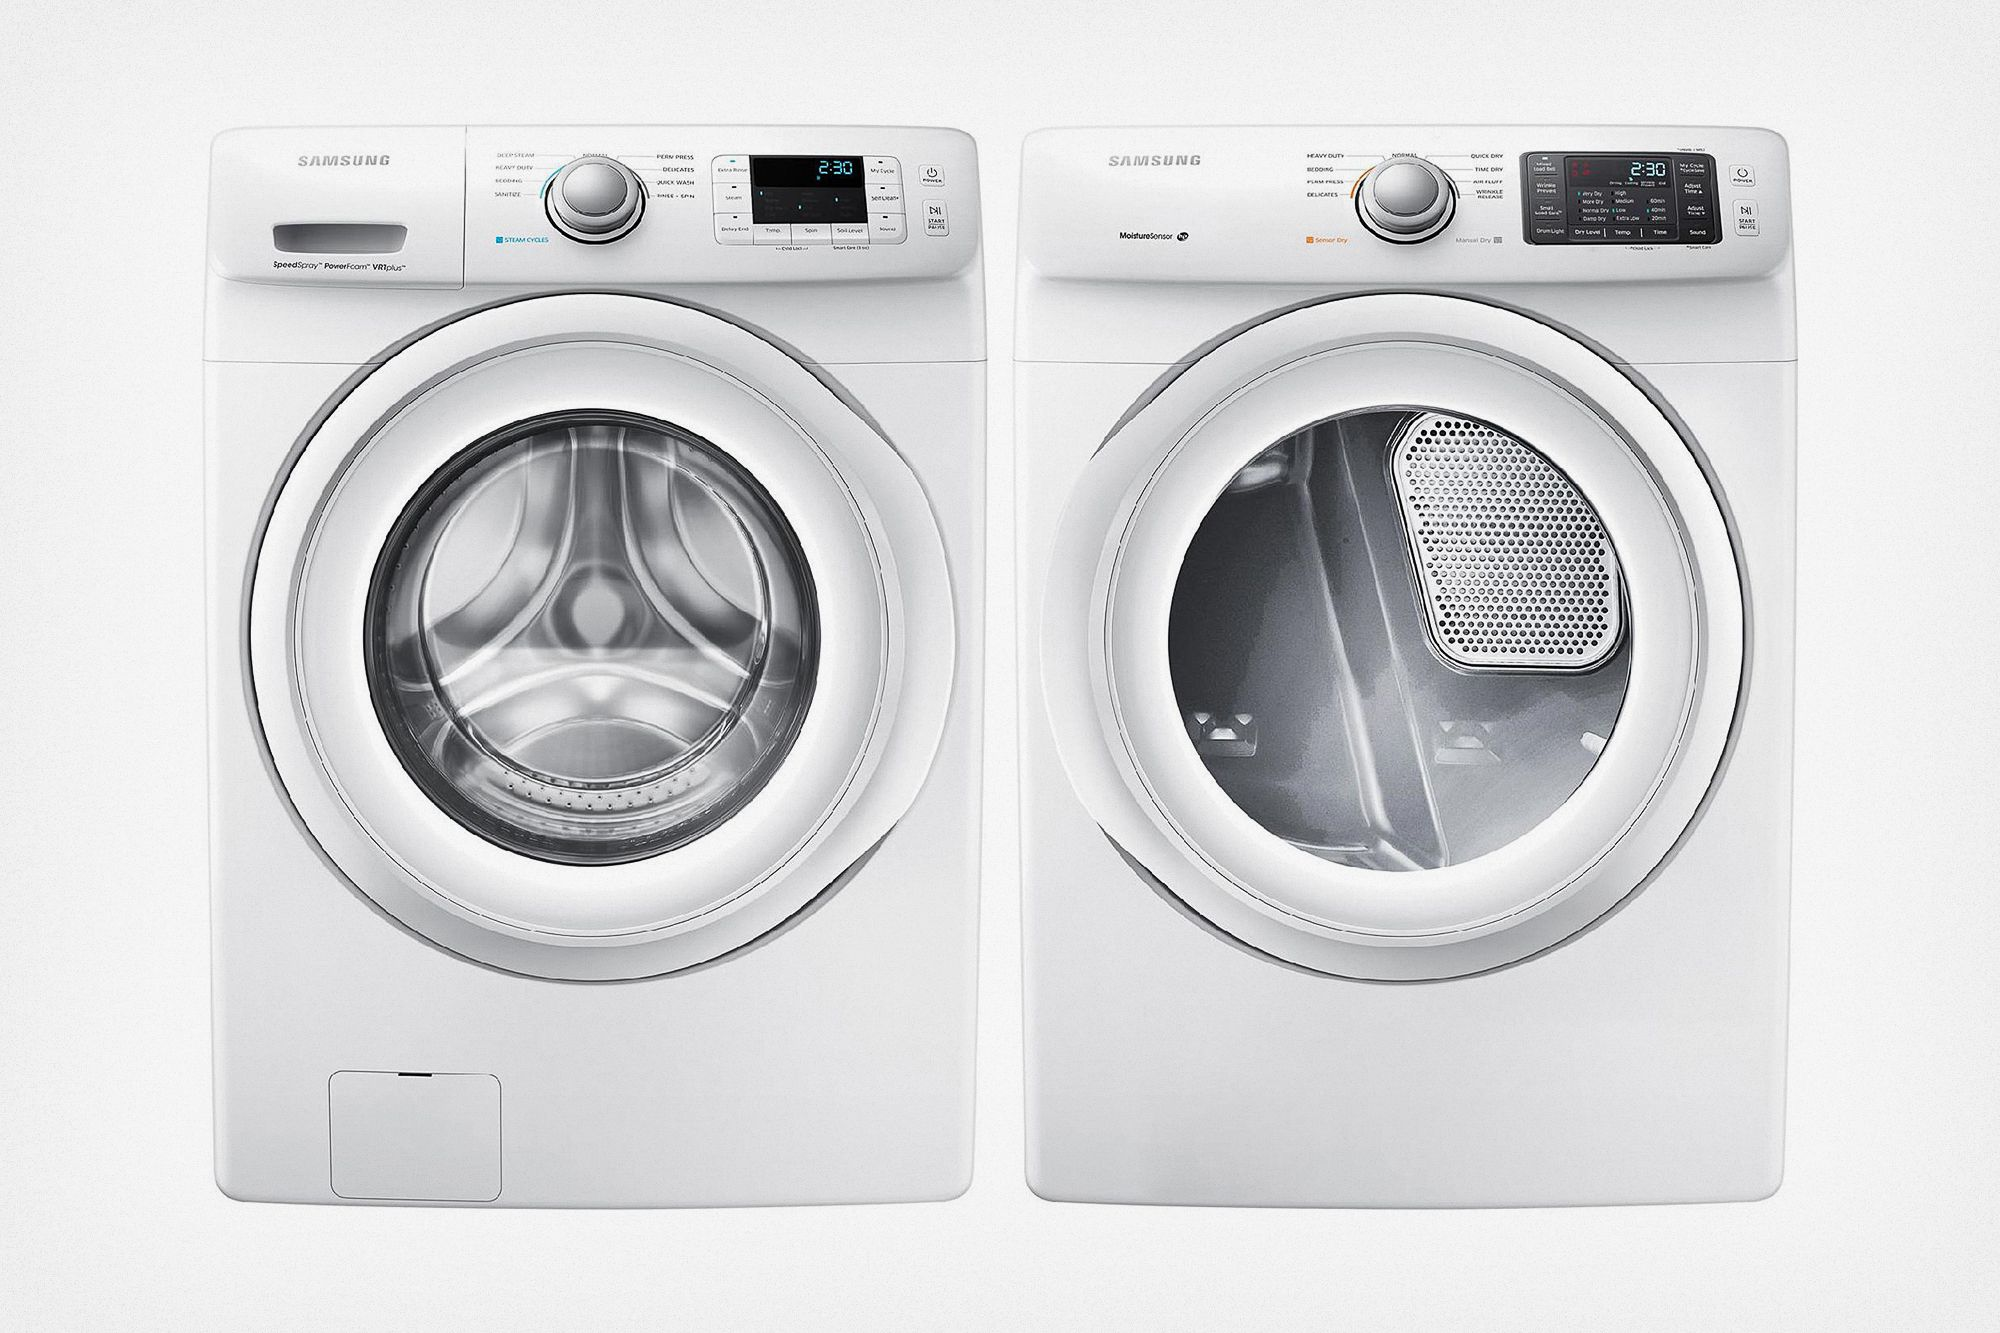 The Best Washer And Dryer Washer And Dryer Lg Washer And Dryer